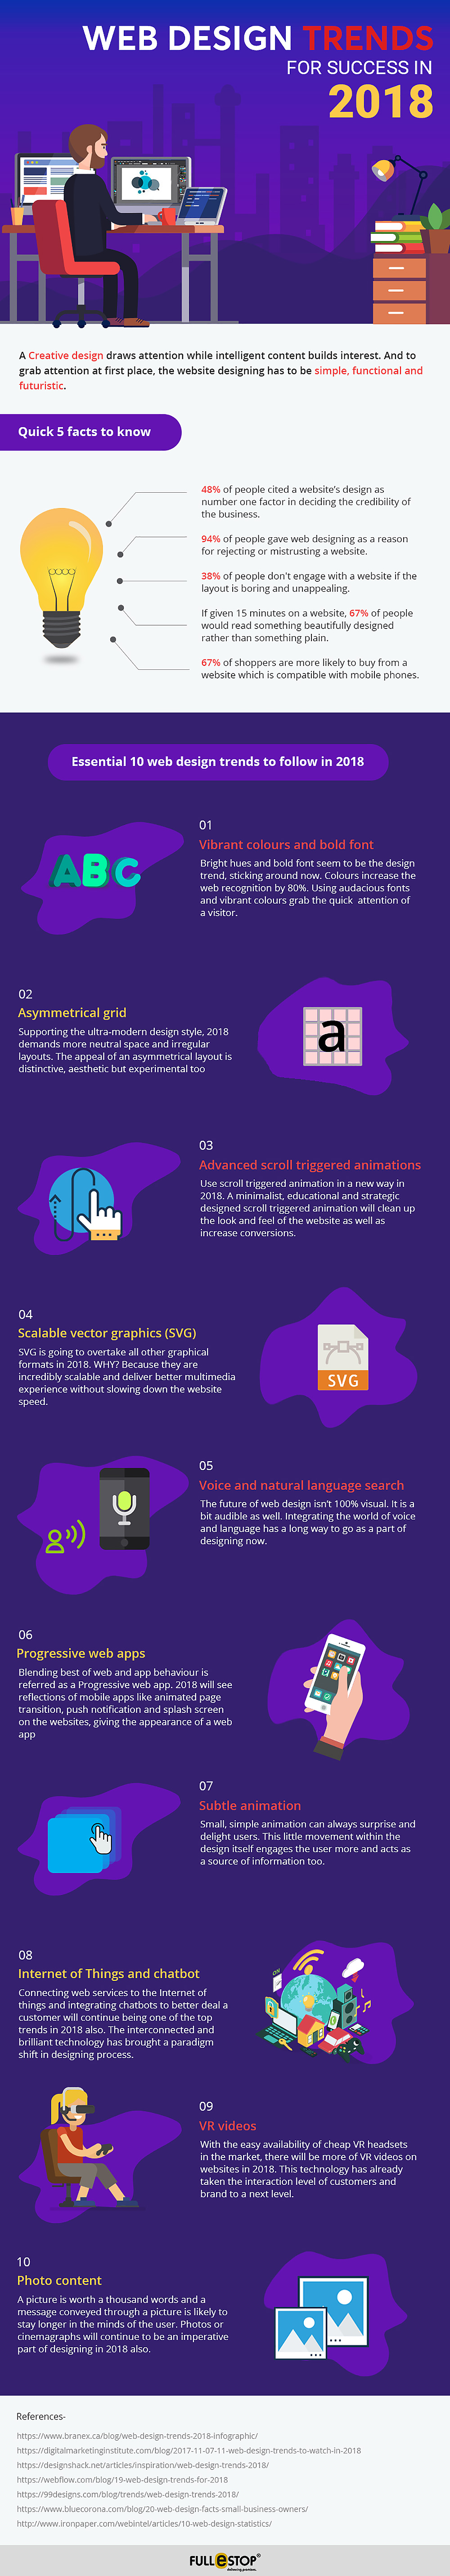 Infographic] Here are some web design trends for success in 2018